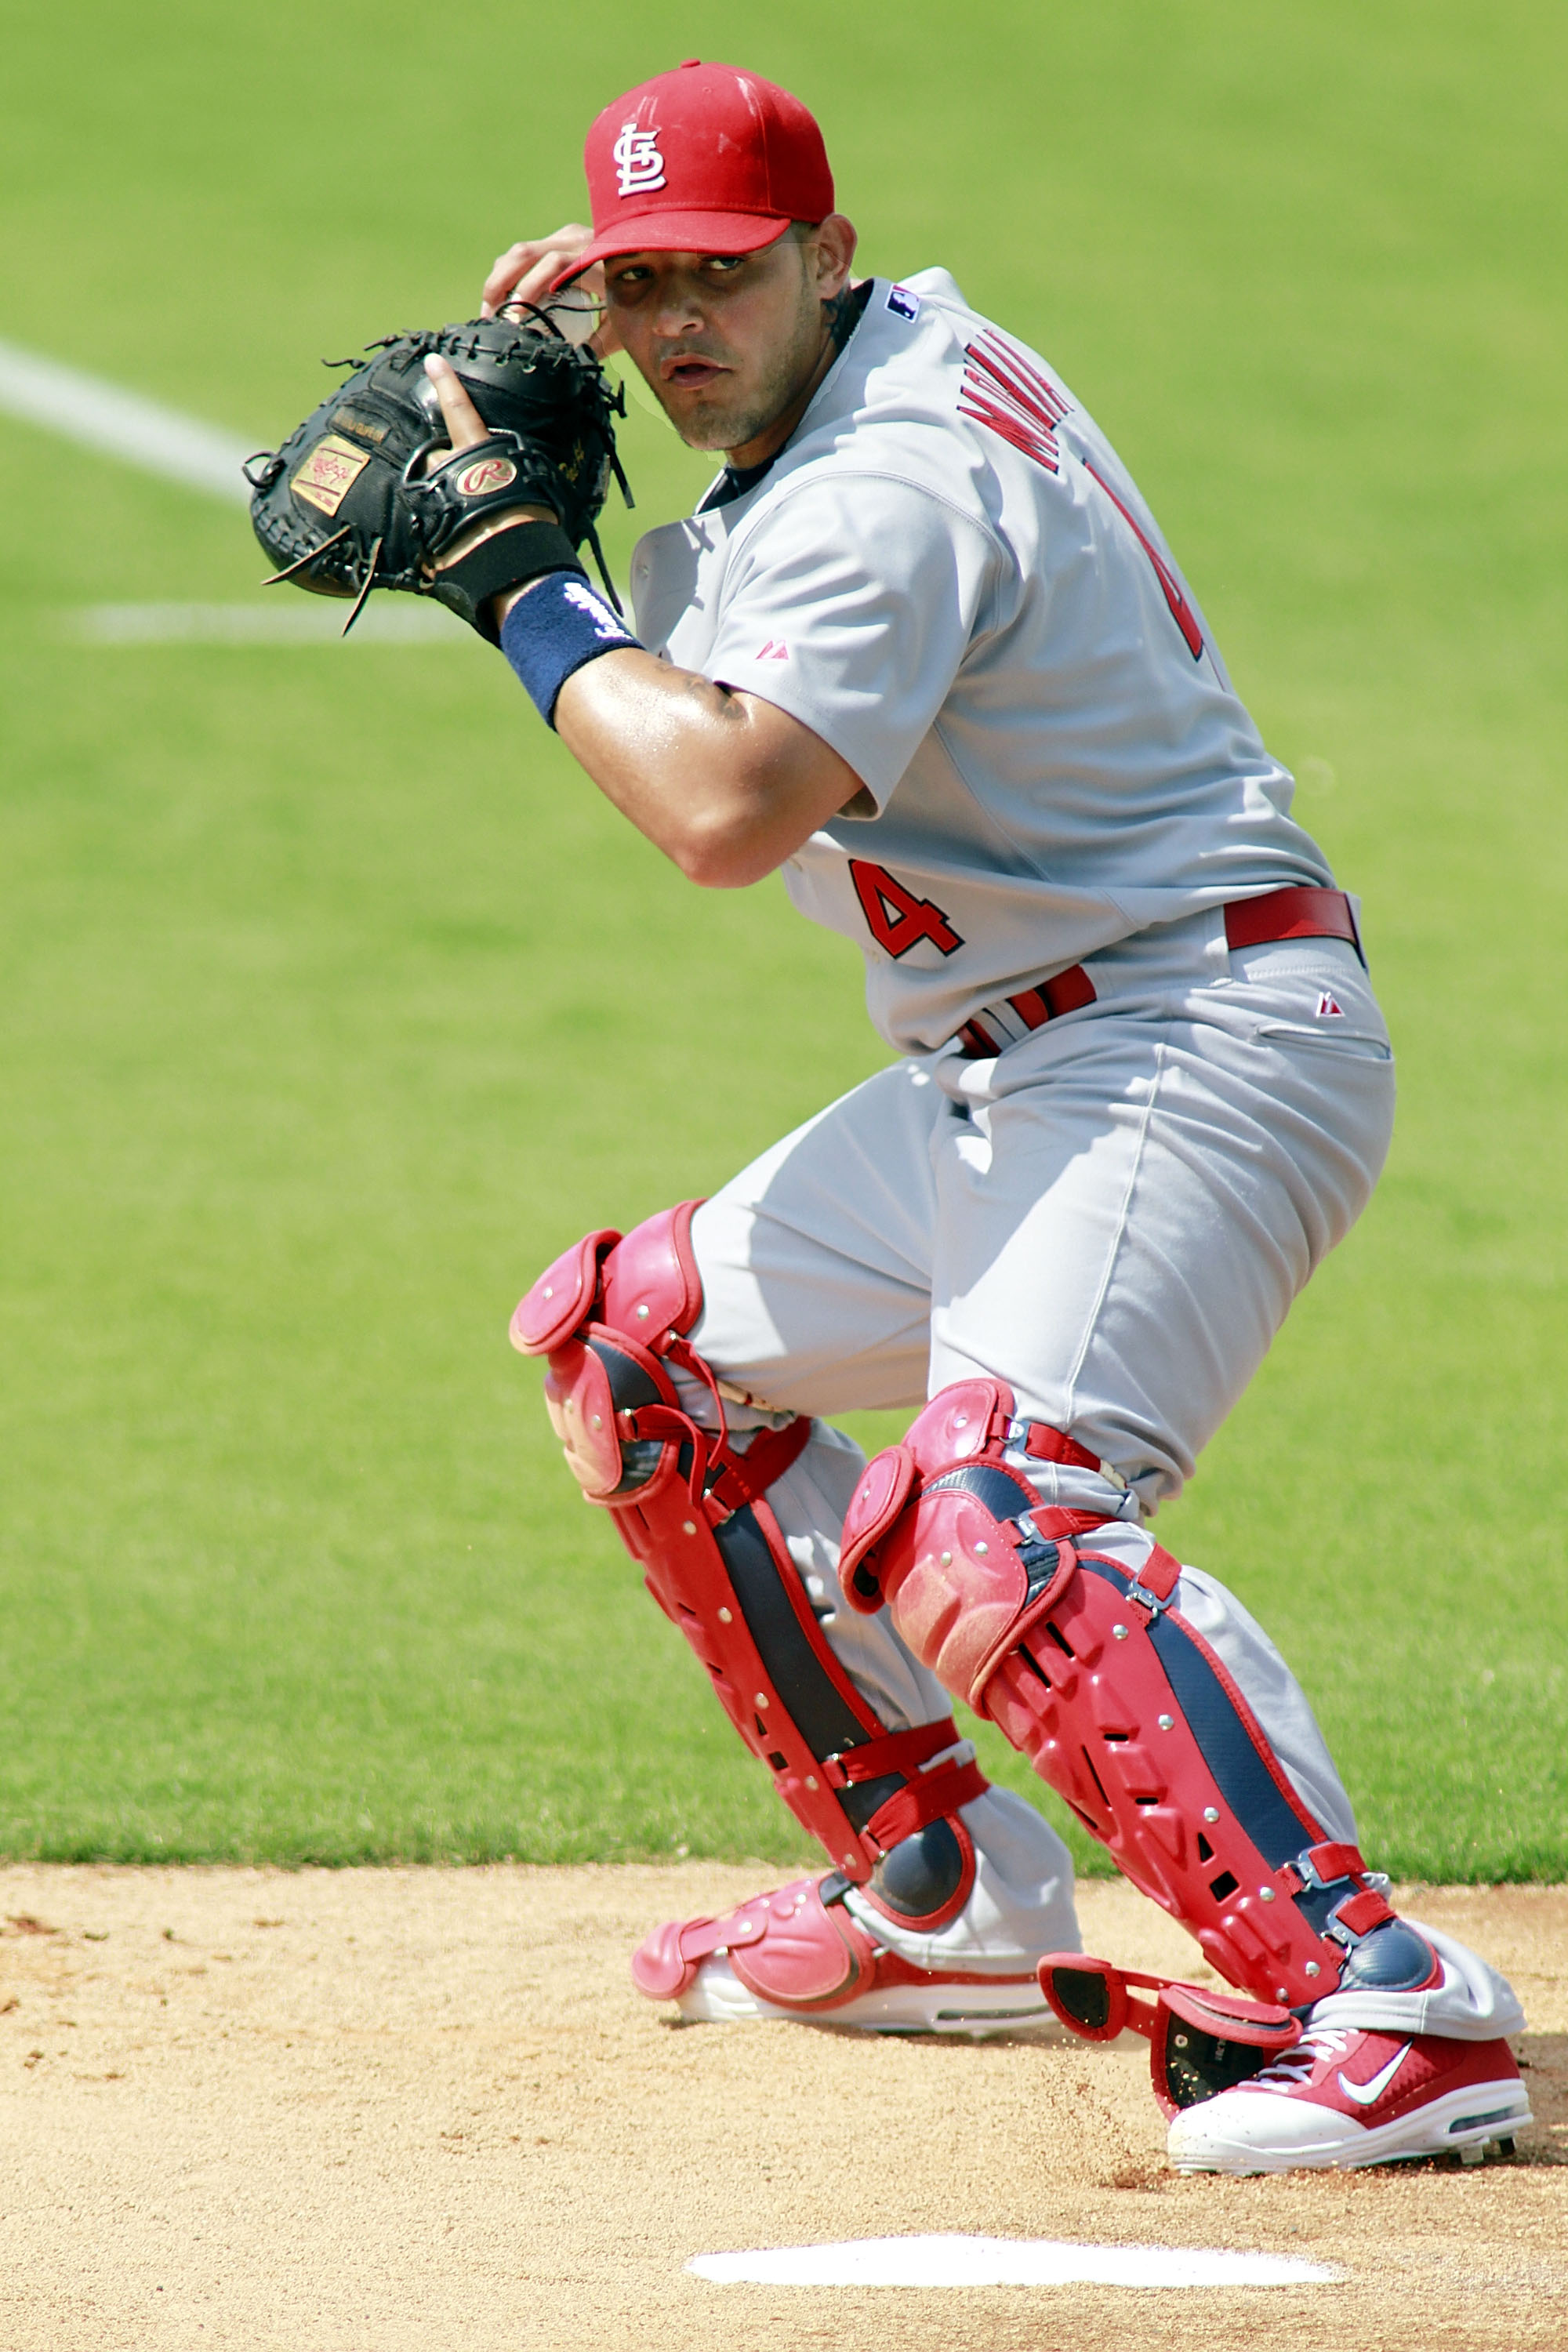 JUPITER, FL - MARCH 01:  Catcher Yadier Molina of the St. Louis Cardinals prepares for the Florida Marlins at Roger Dean Stadium on March 1, 2011 in Jupiter, Florida.  (Photo by Marc Serota/Getty Images)